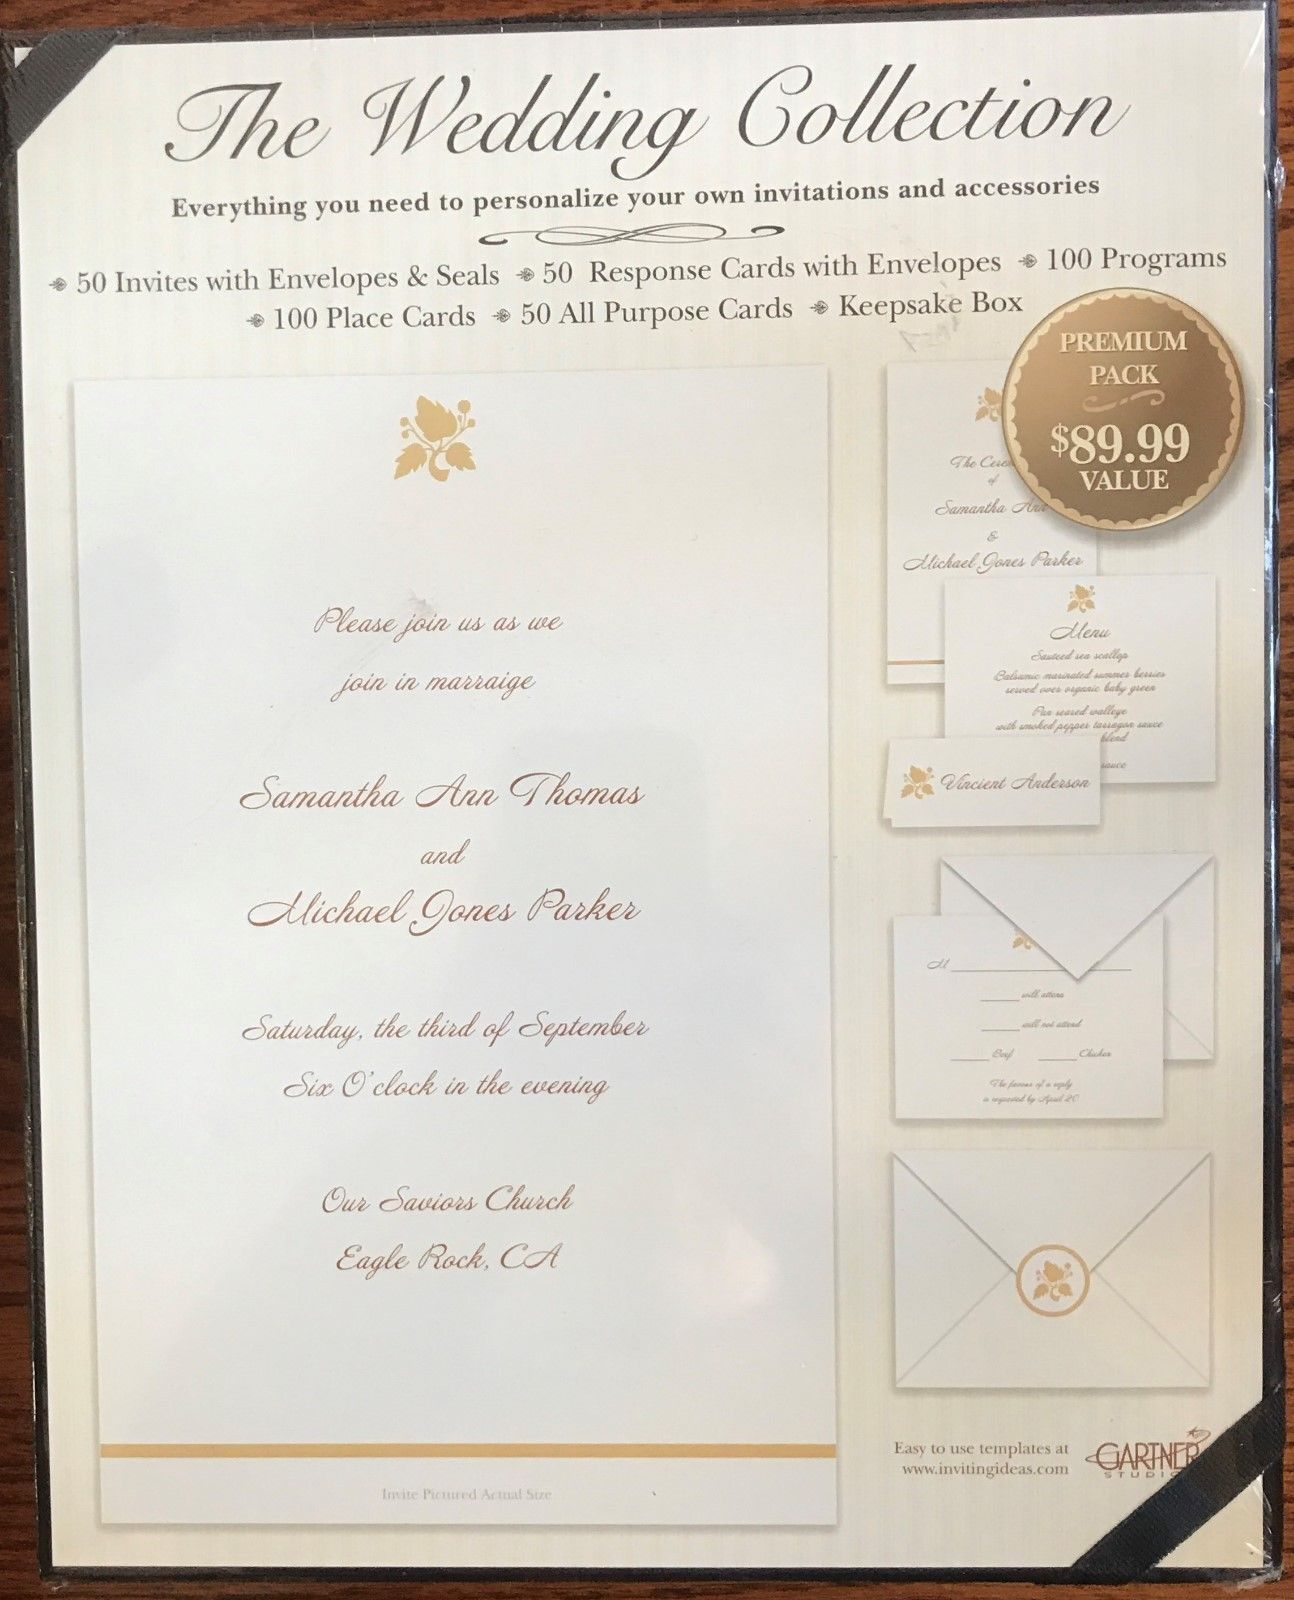 Invitations And Stationery 102469 The Wedding Collection Premium